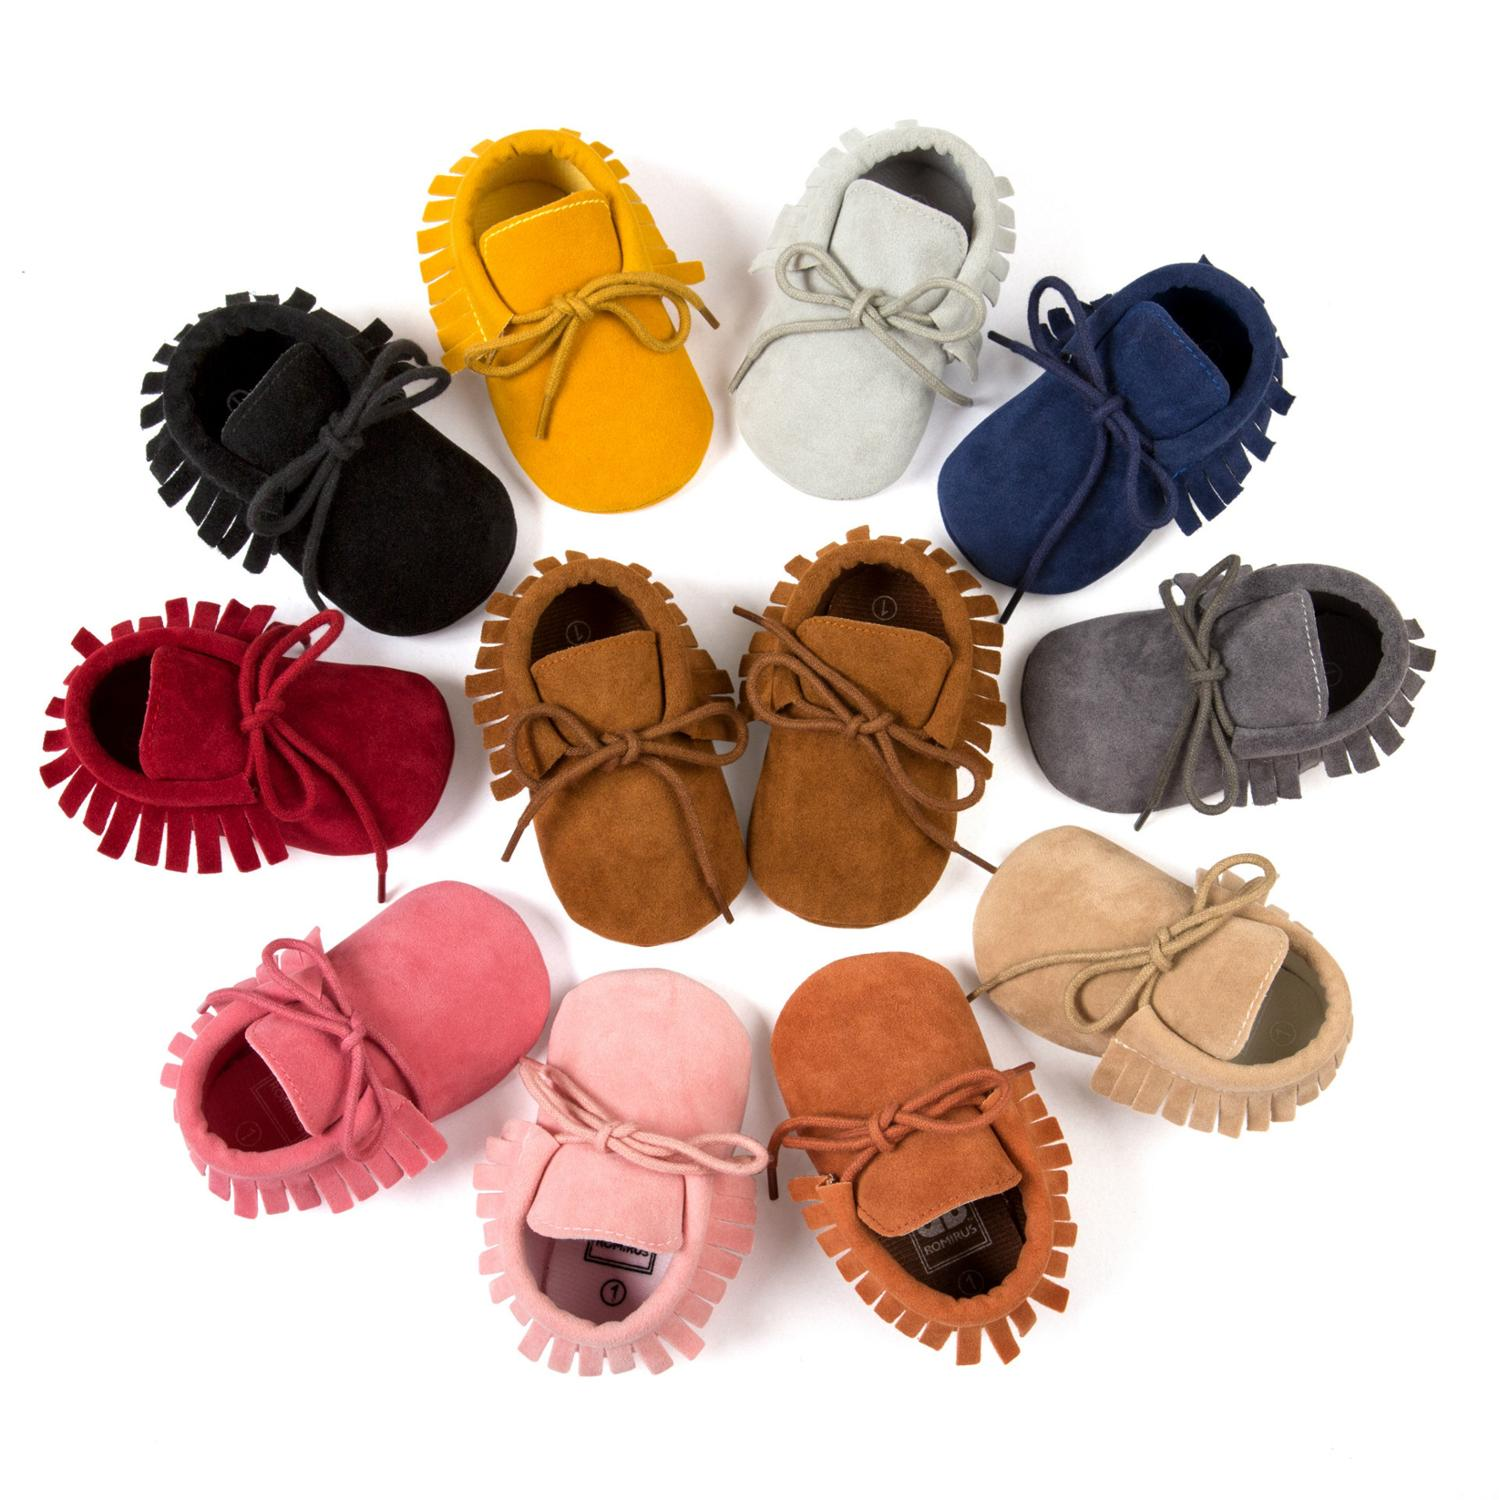 Baby Shoes Newborn Infant Boy Girl First Walker Colours Fringe Suede Soft-soled Casual Moccasins Toddler Baby Crib Shose